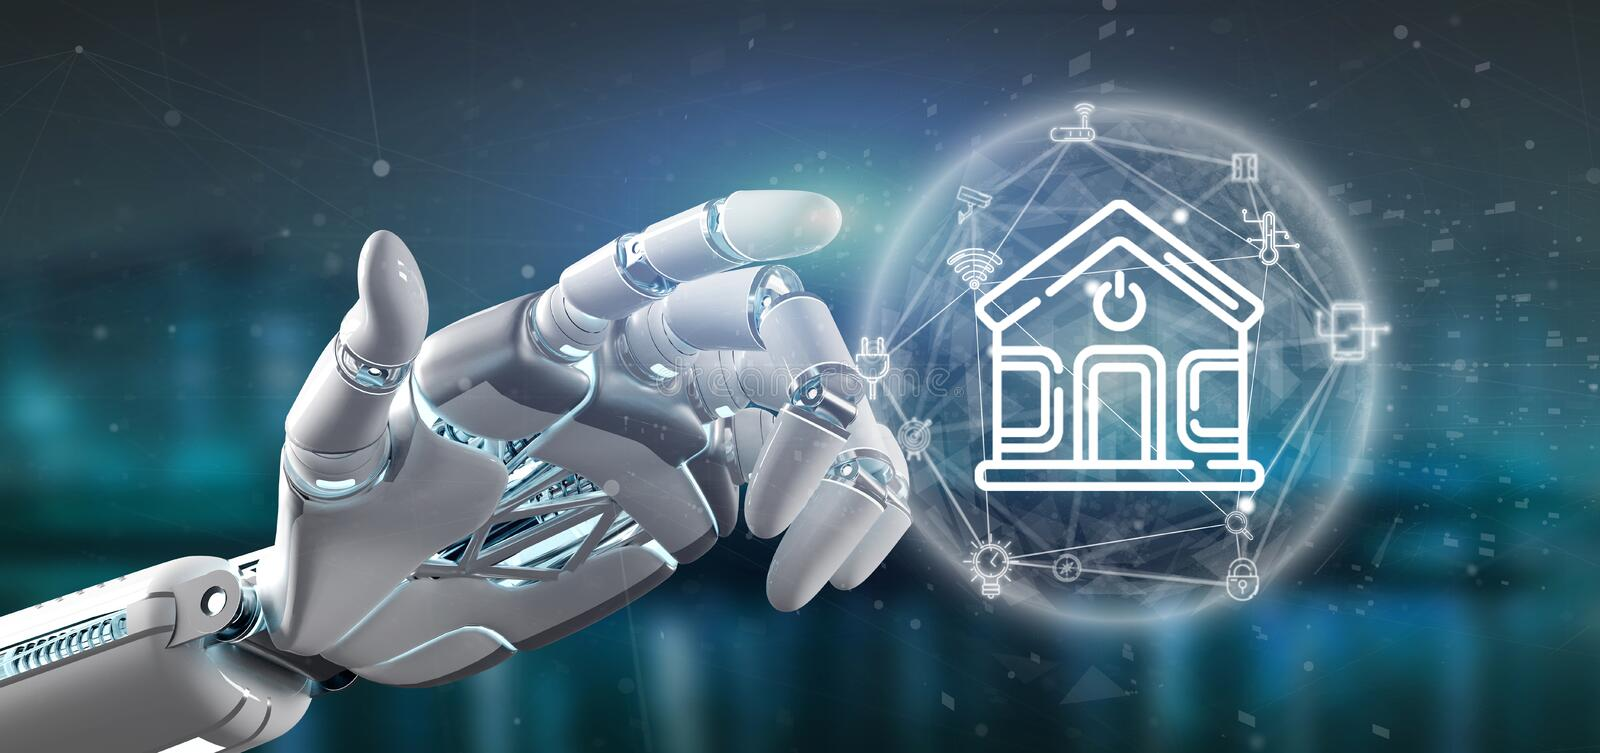 Cyborg holding Smart home interface with icon, stats and data 3d rendering. View of Cyborg holding Smart home interface with icon, stats and data 3d rendering stock illustration